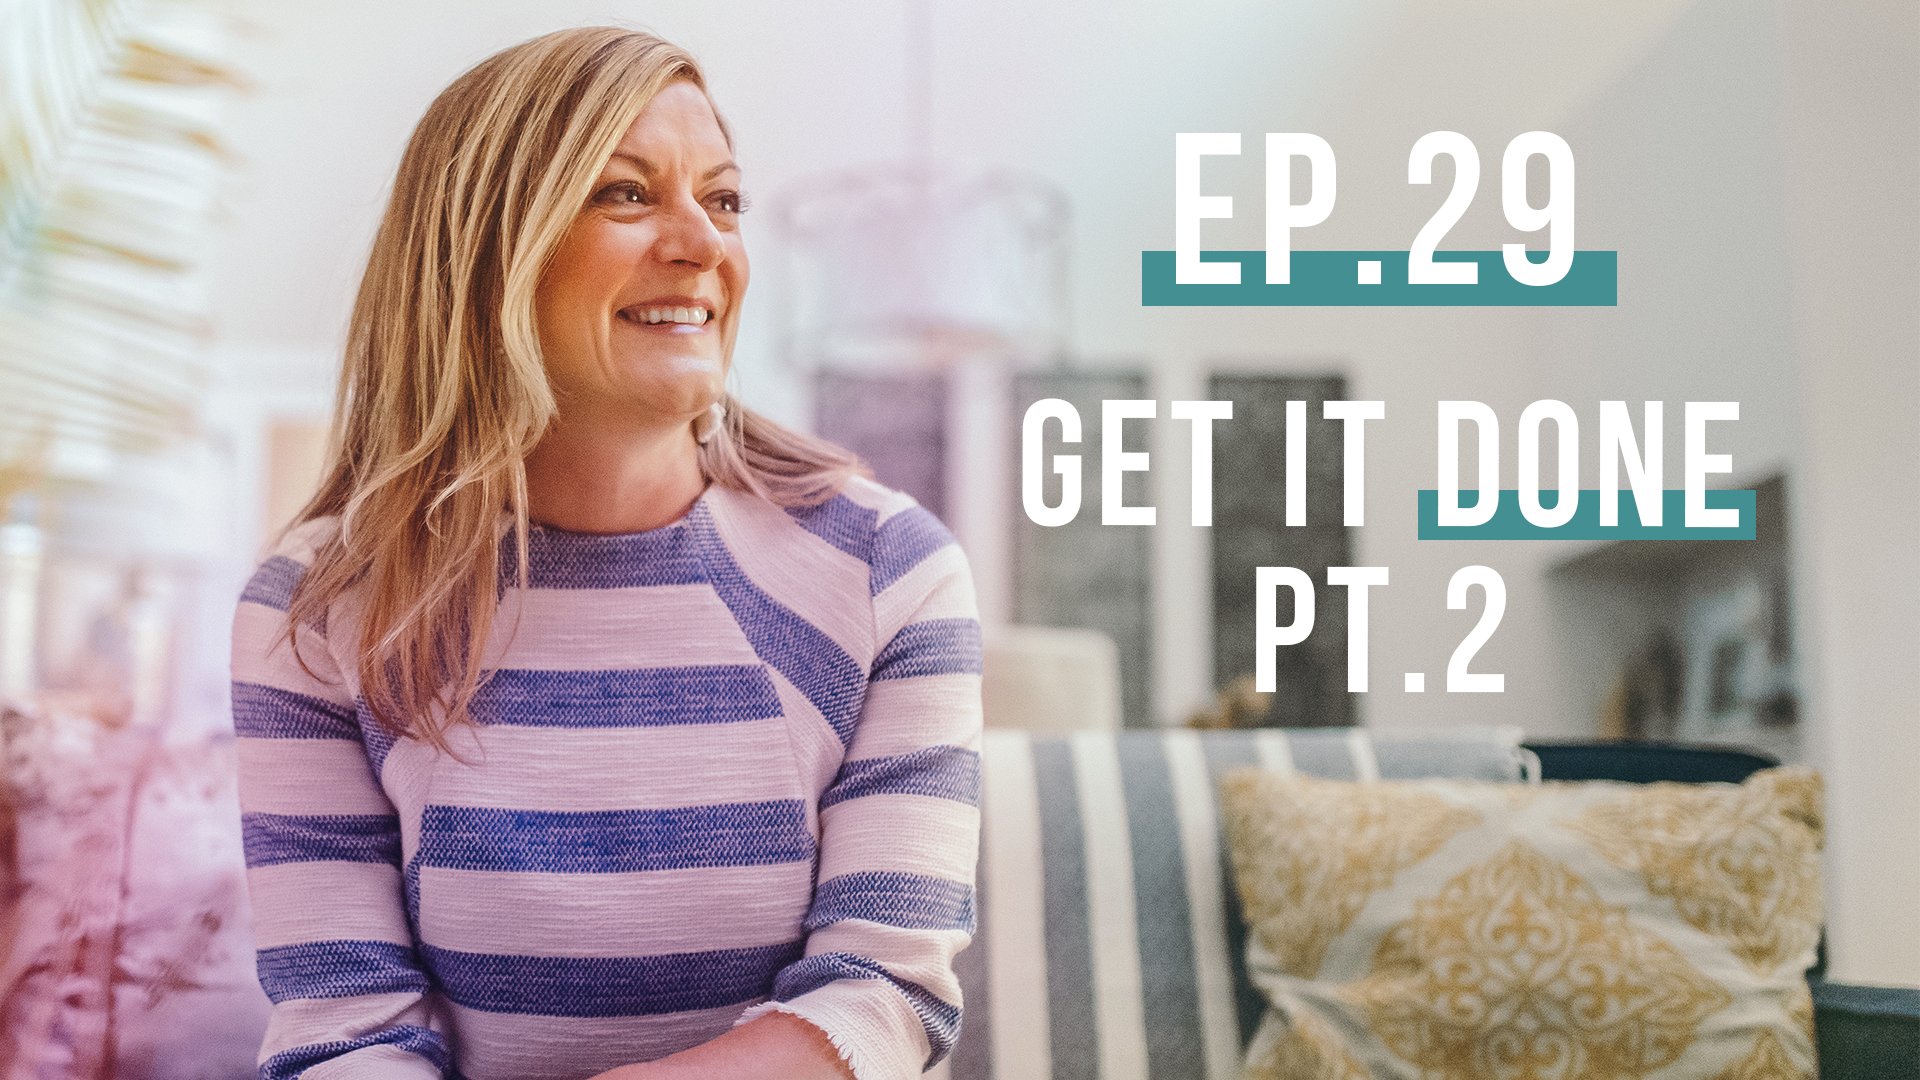 Get It Done, Pt 2 | Let's Be Real Podcast Ep. 29